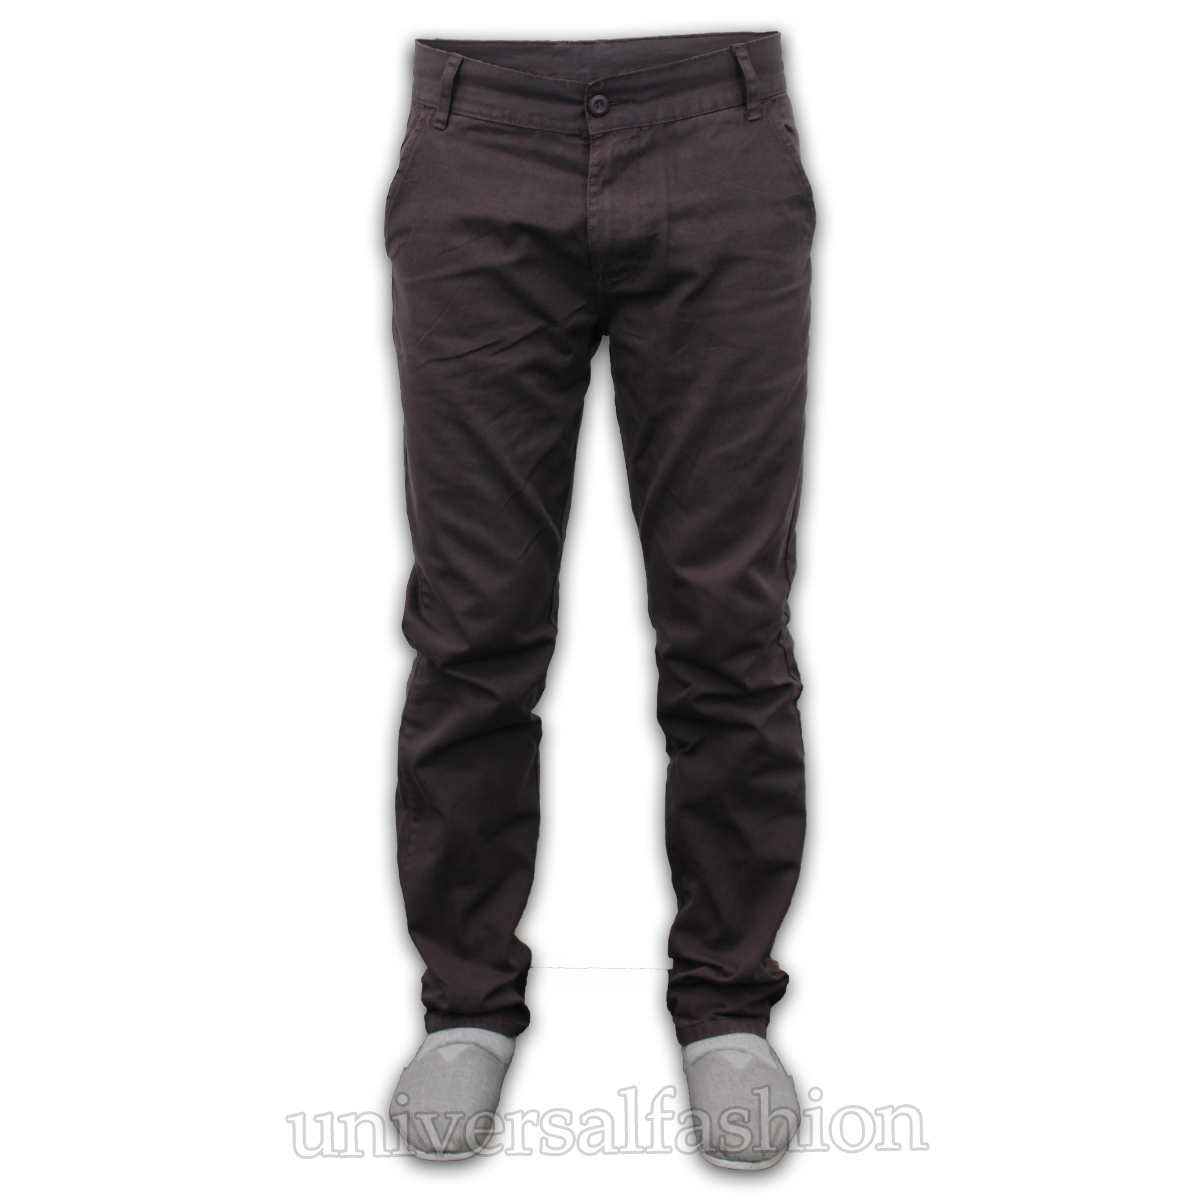 Mens-Chino-Jeans-Kushiro-City-Jack-South-Pants-Straight-Leg-Trousers-Bottoms-New